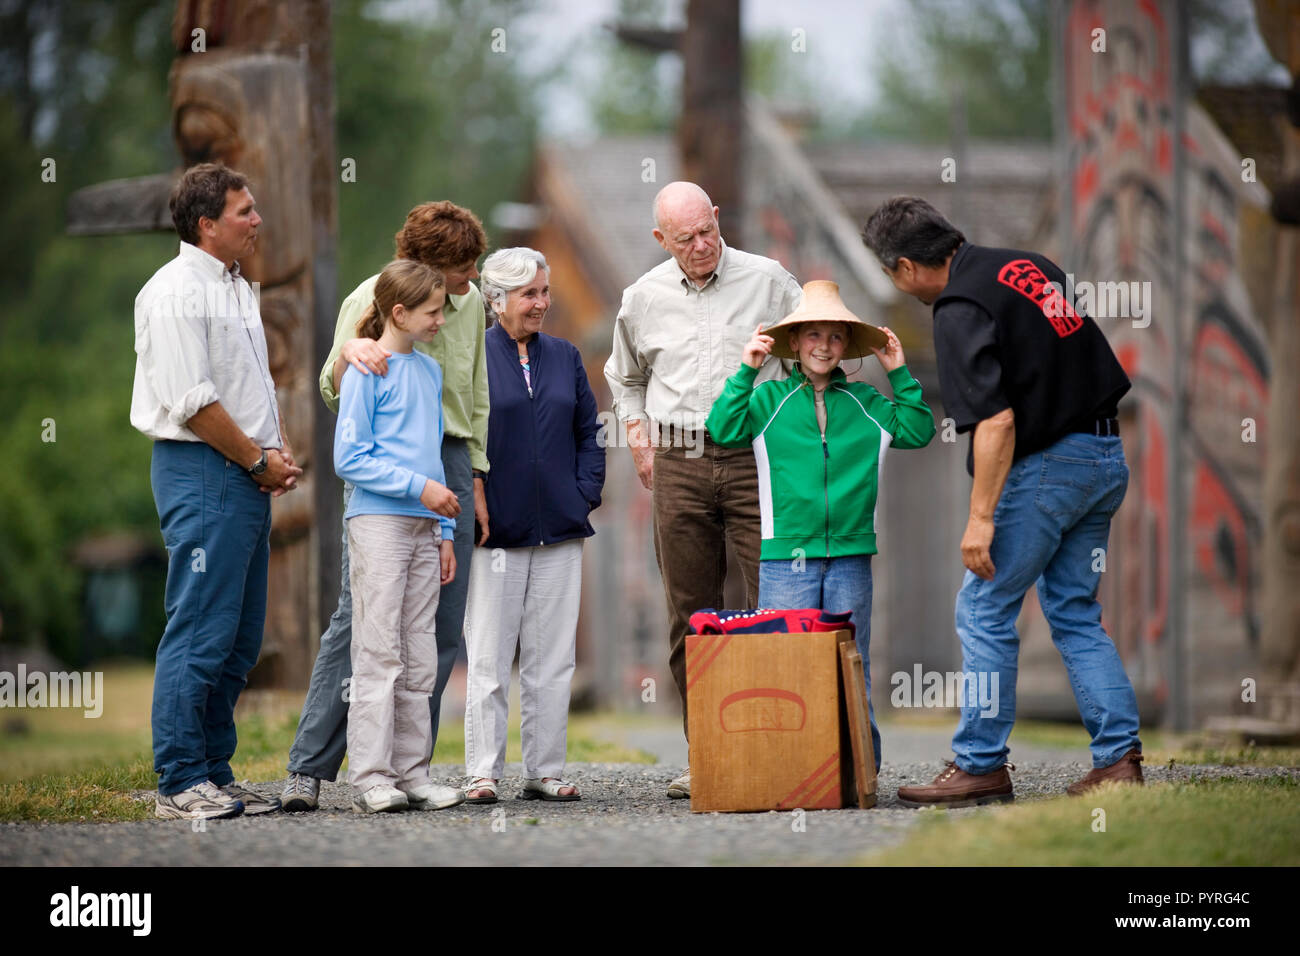 Young boy trying on a hat while standing next to his family. - Stock Image